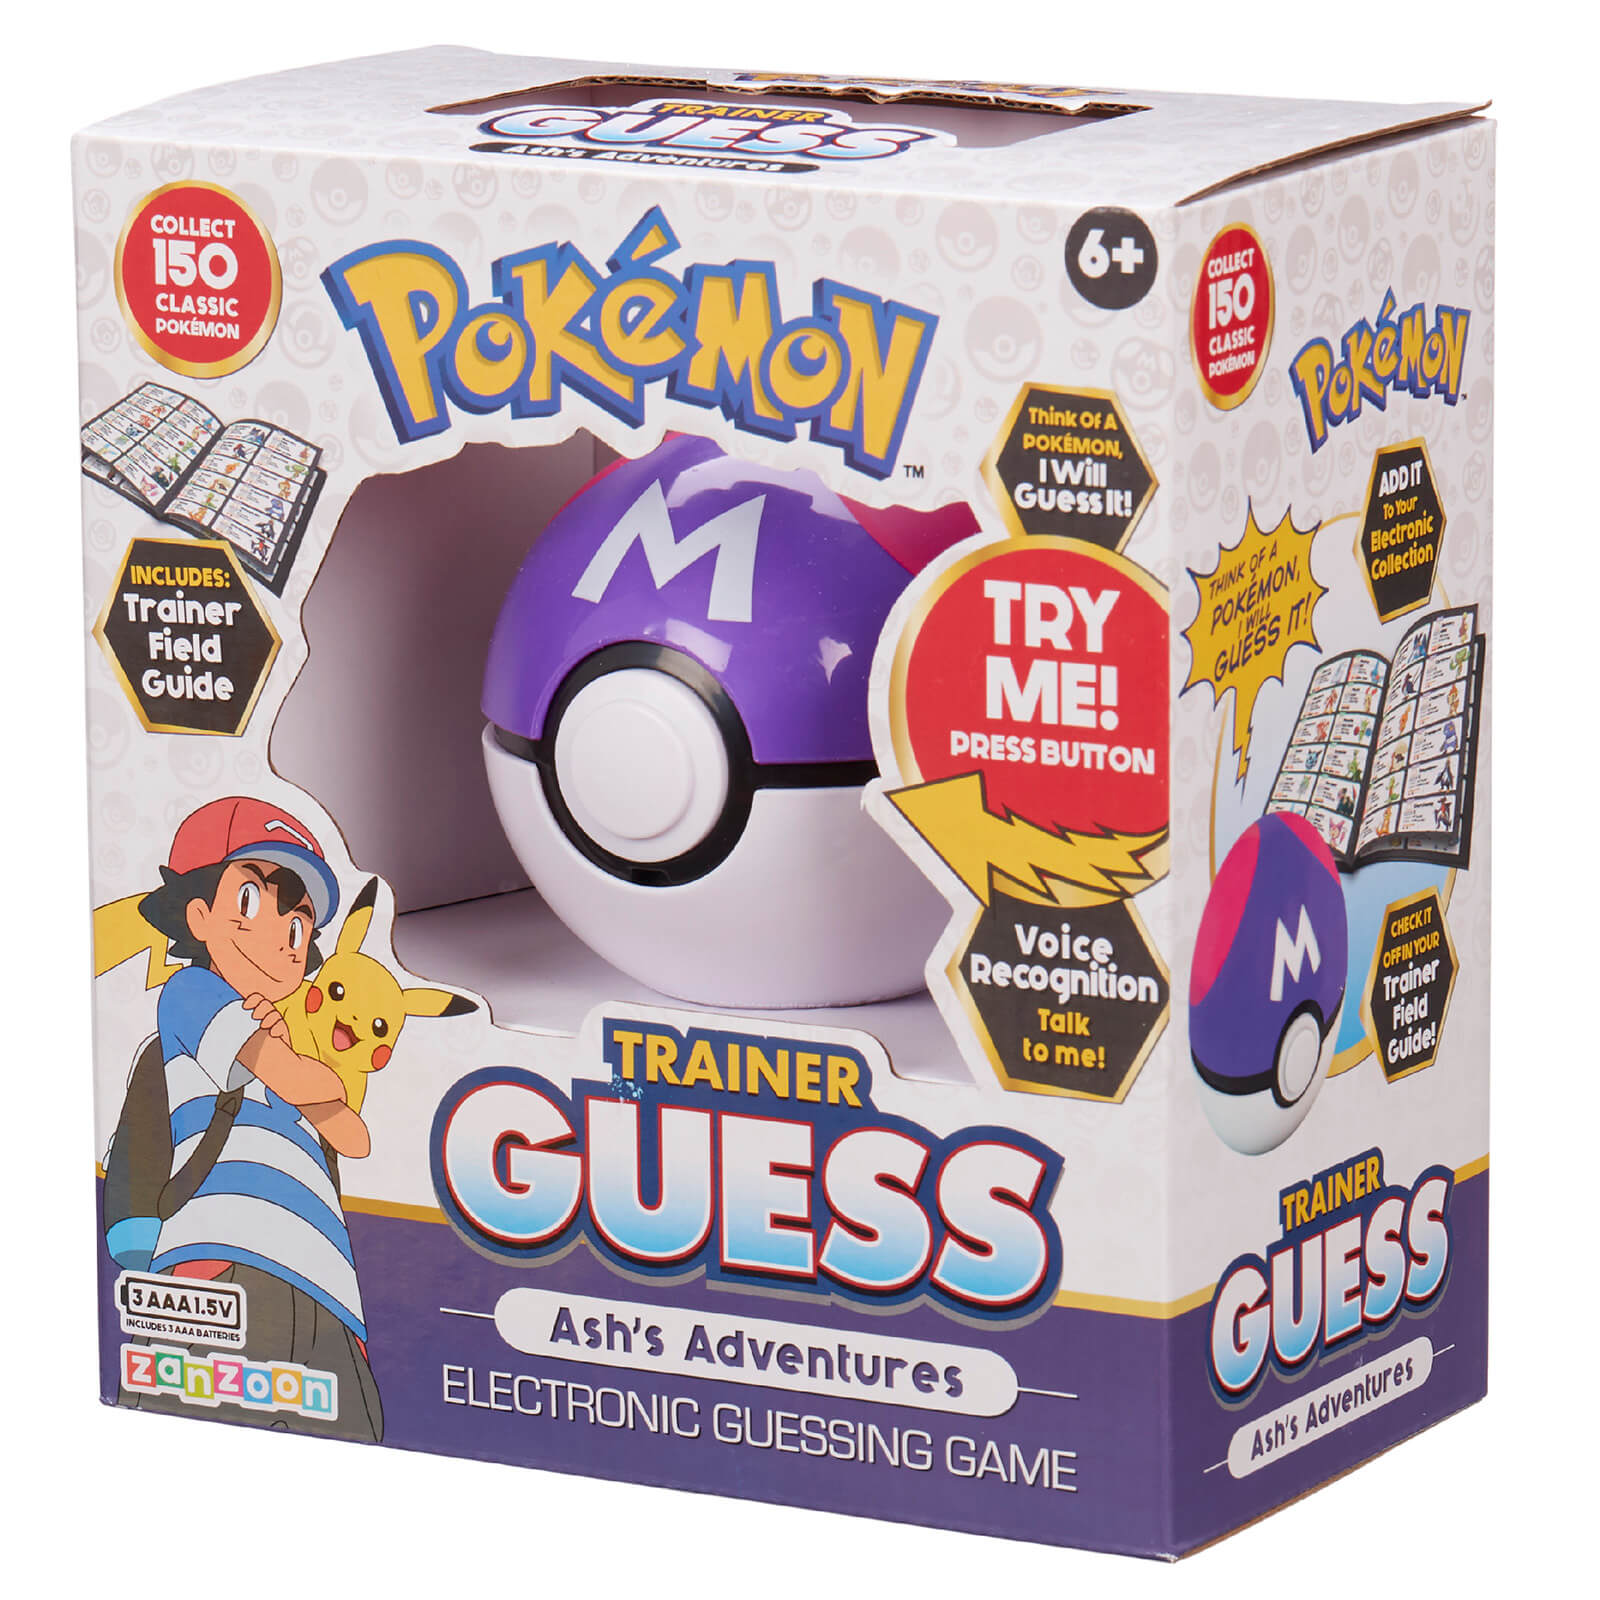 Image of Pokémon Trainer Guess Ash's Adventures Game